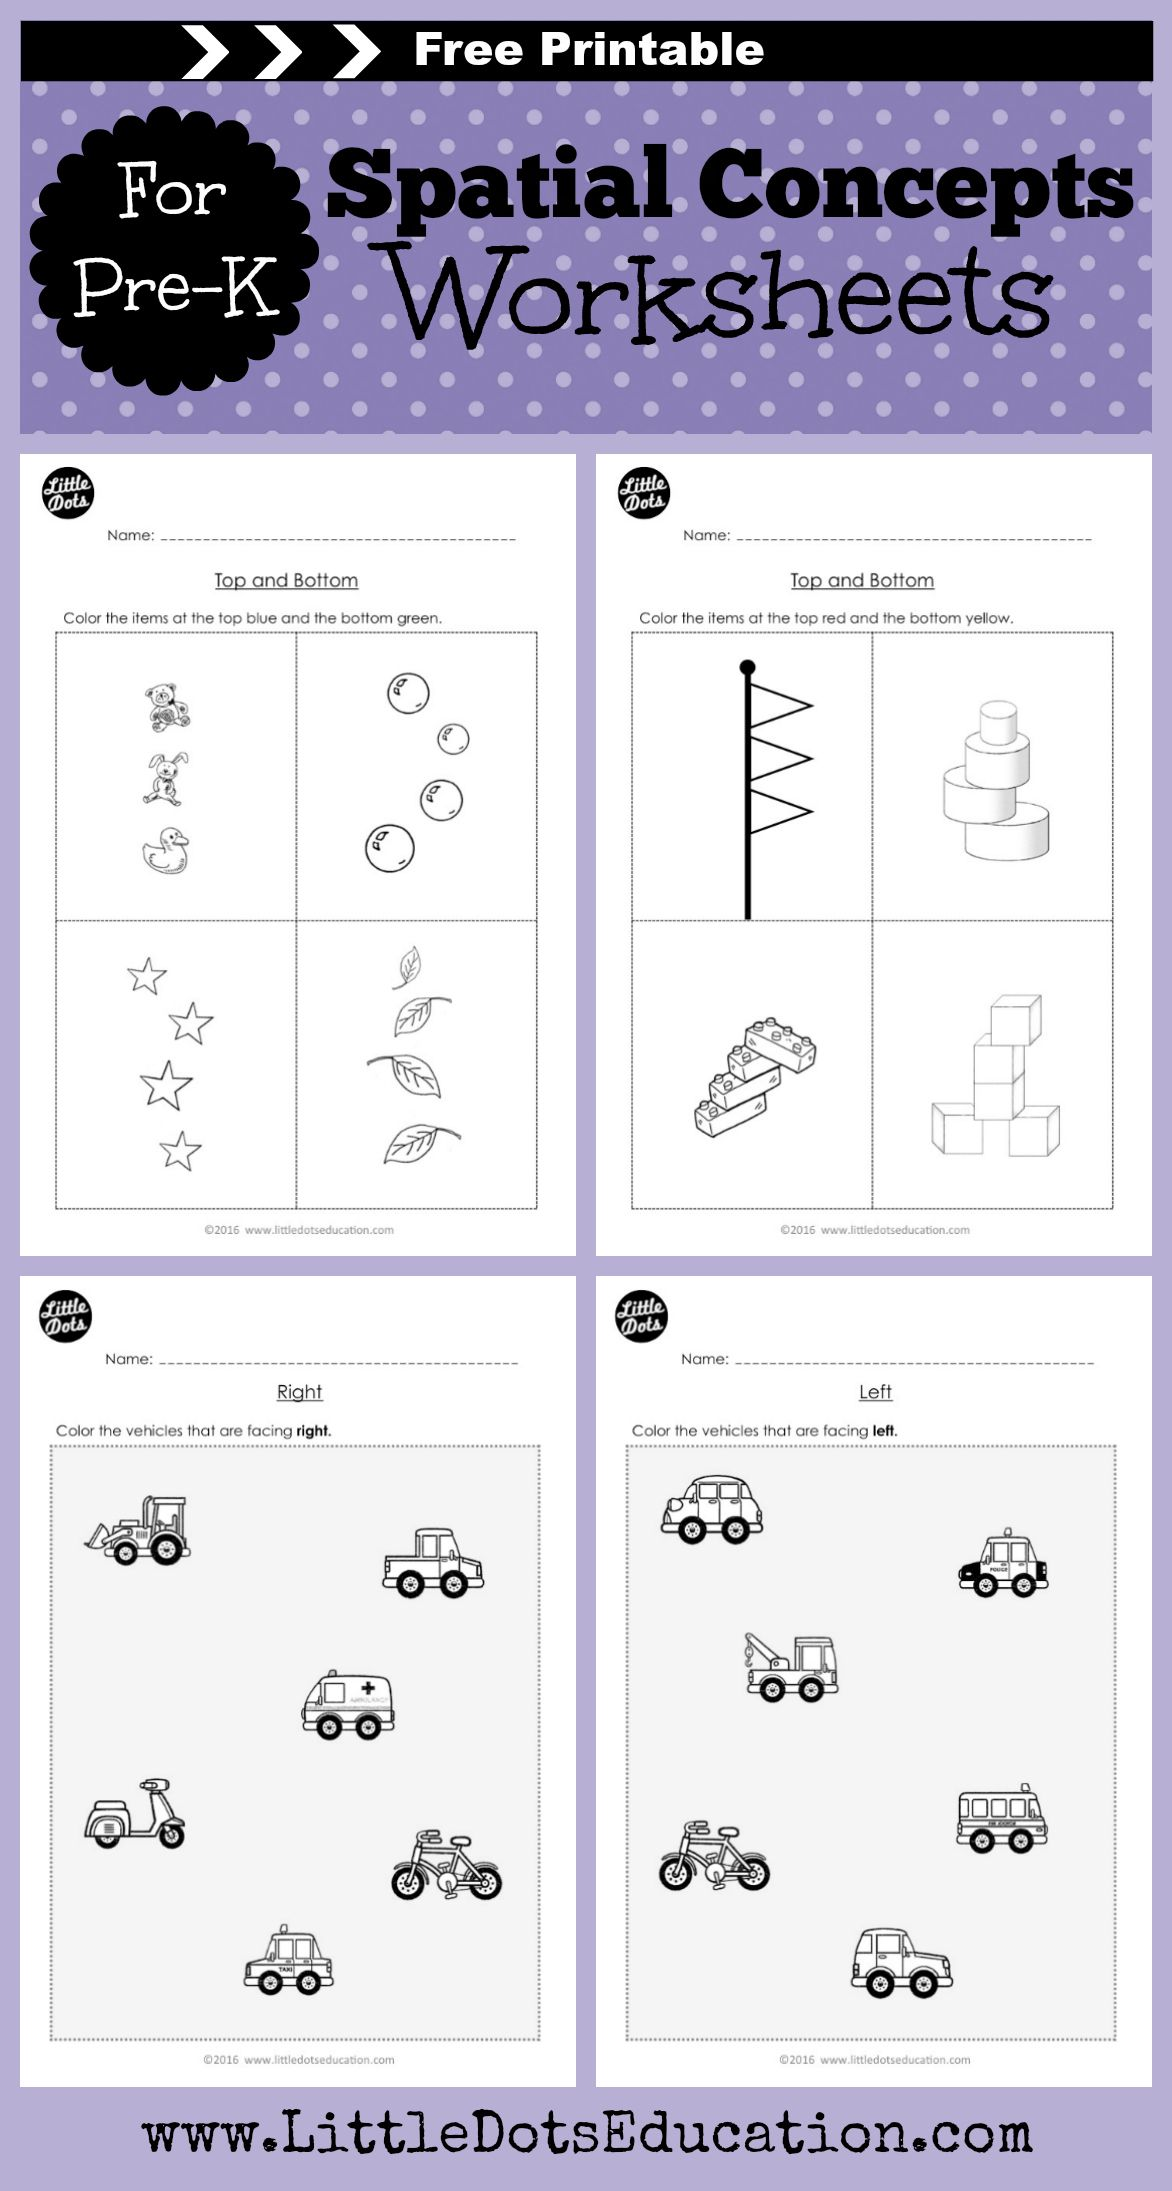 download free worksheets to learn basic spatial concepts for pre k or preschool level learn the. Black Bedroom Furniture Sets. Home Design Ideas